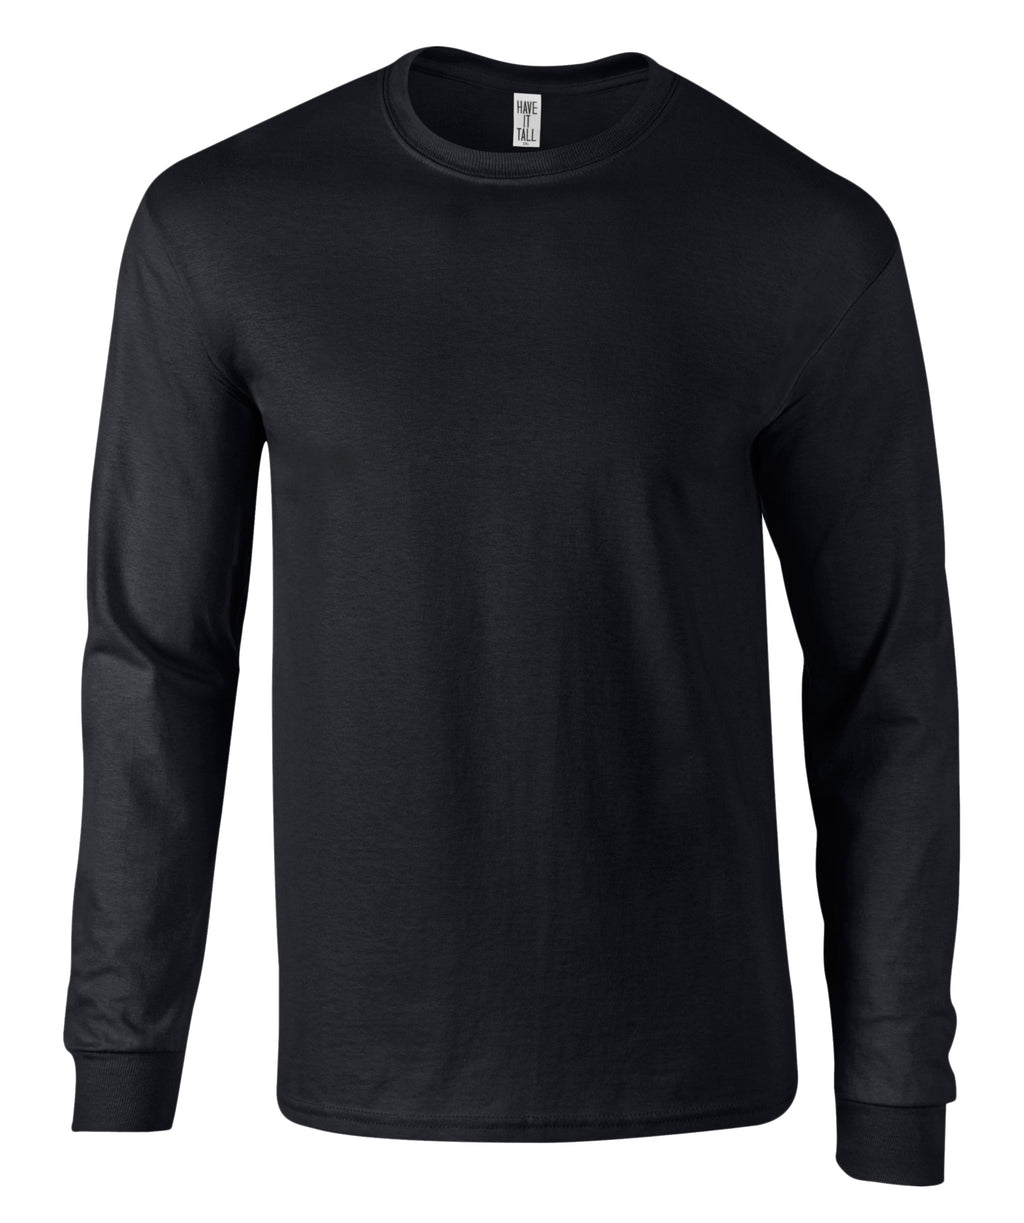 Have It Tall Premium Cotton Long Sleeve T Shirt